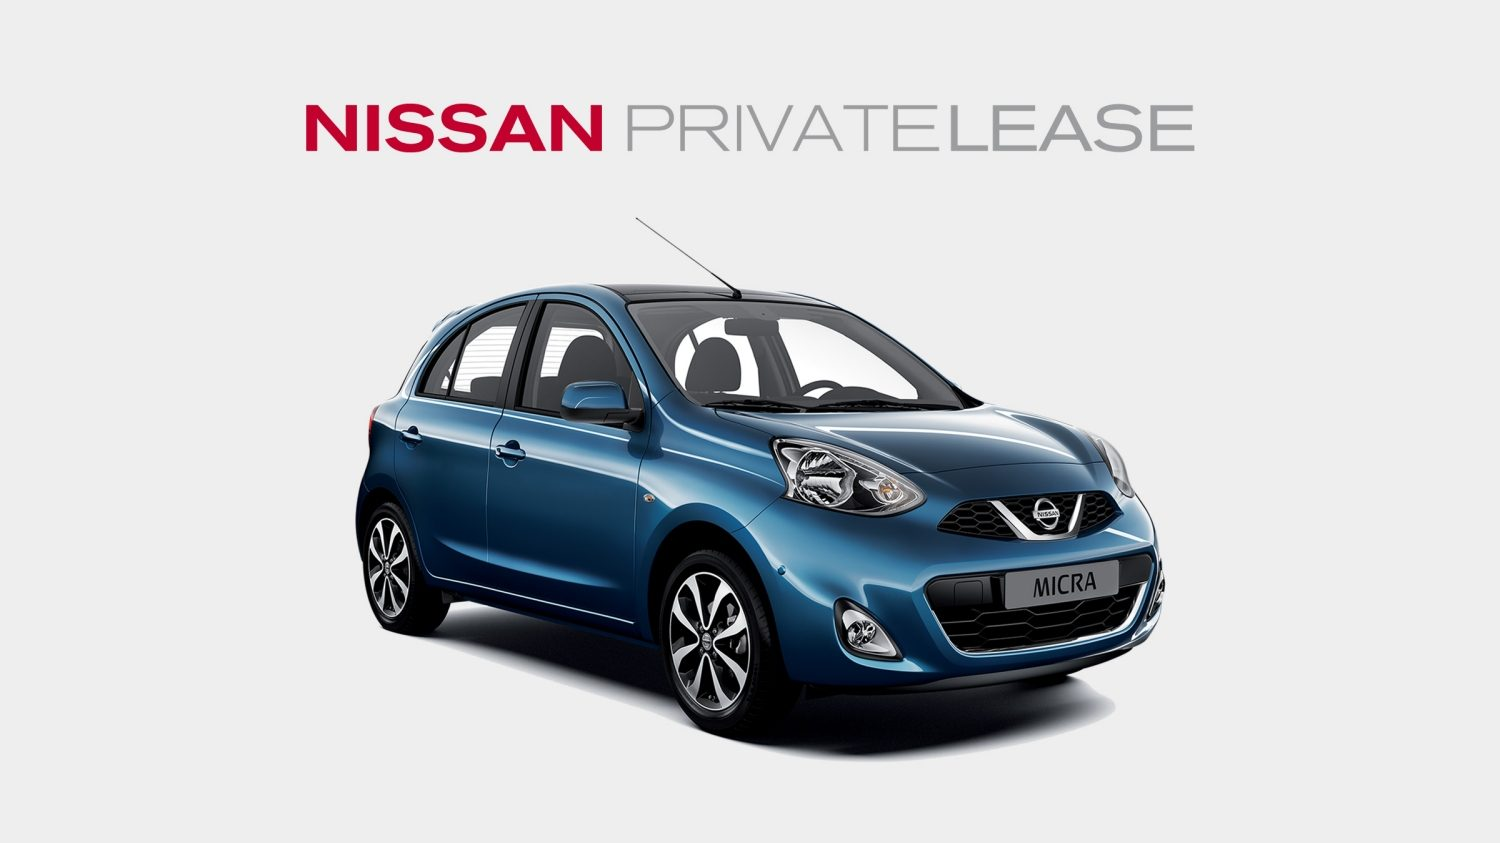 acties nissan micra stadsauto kleine auto nissan. Black Bedroom Furniture Sets. Home Design Ideas